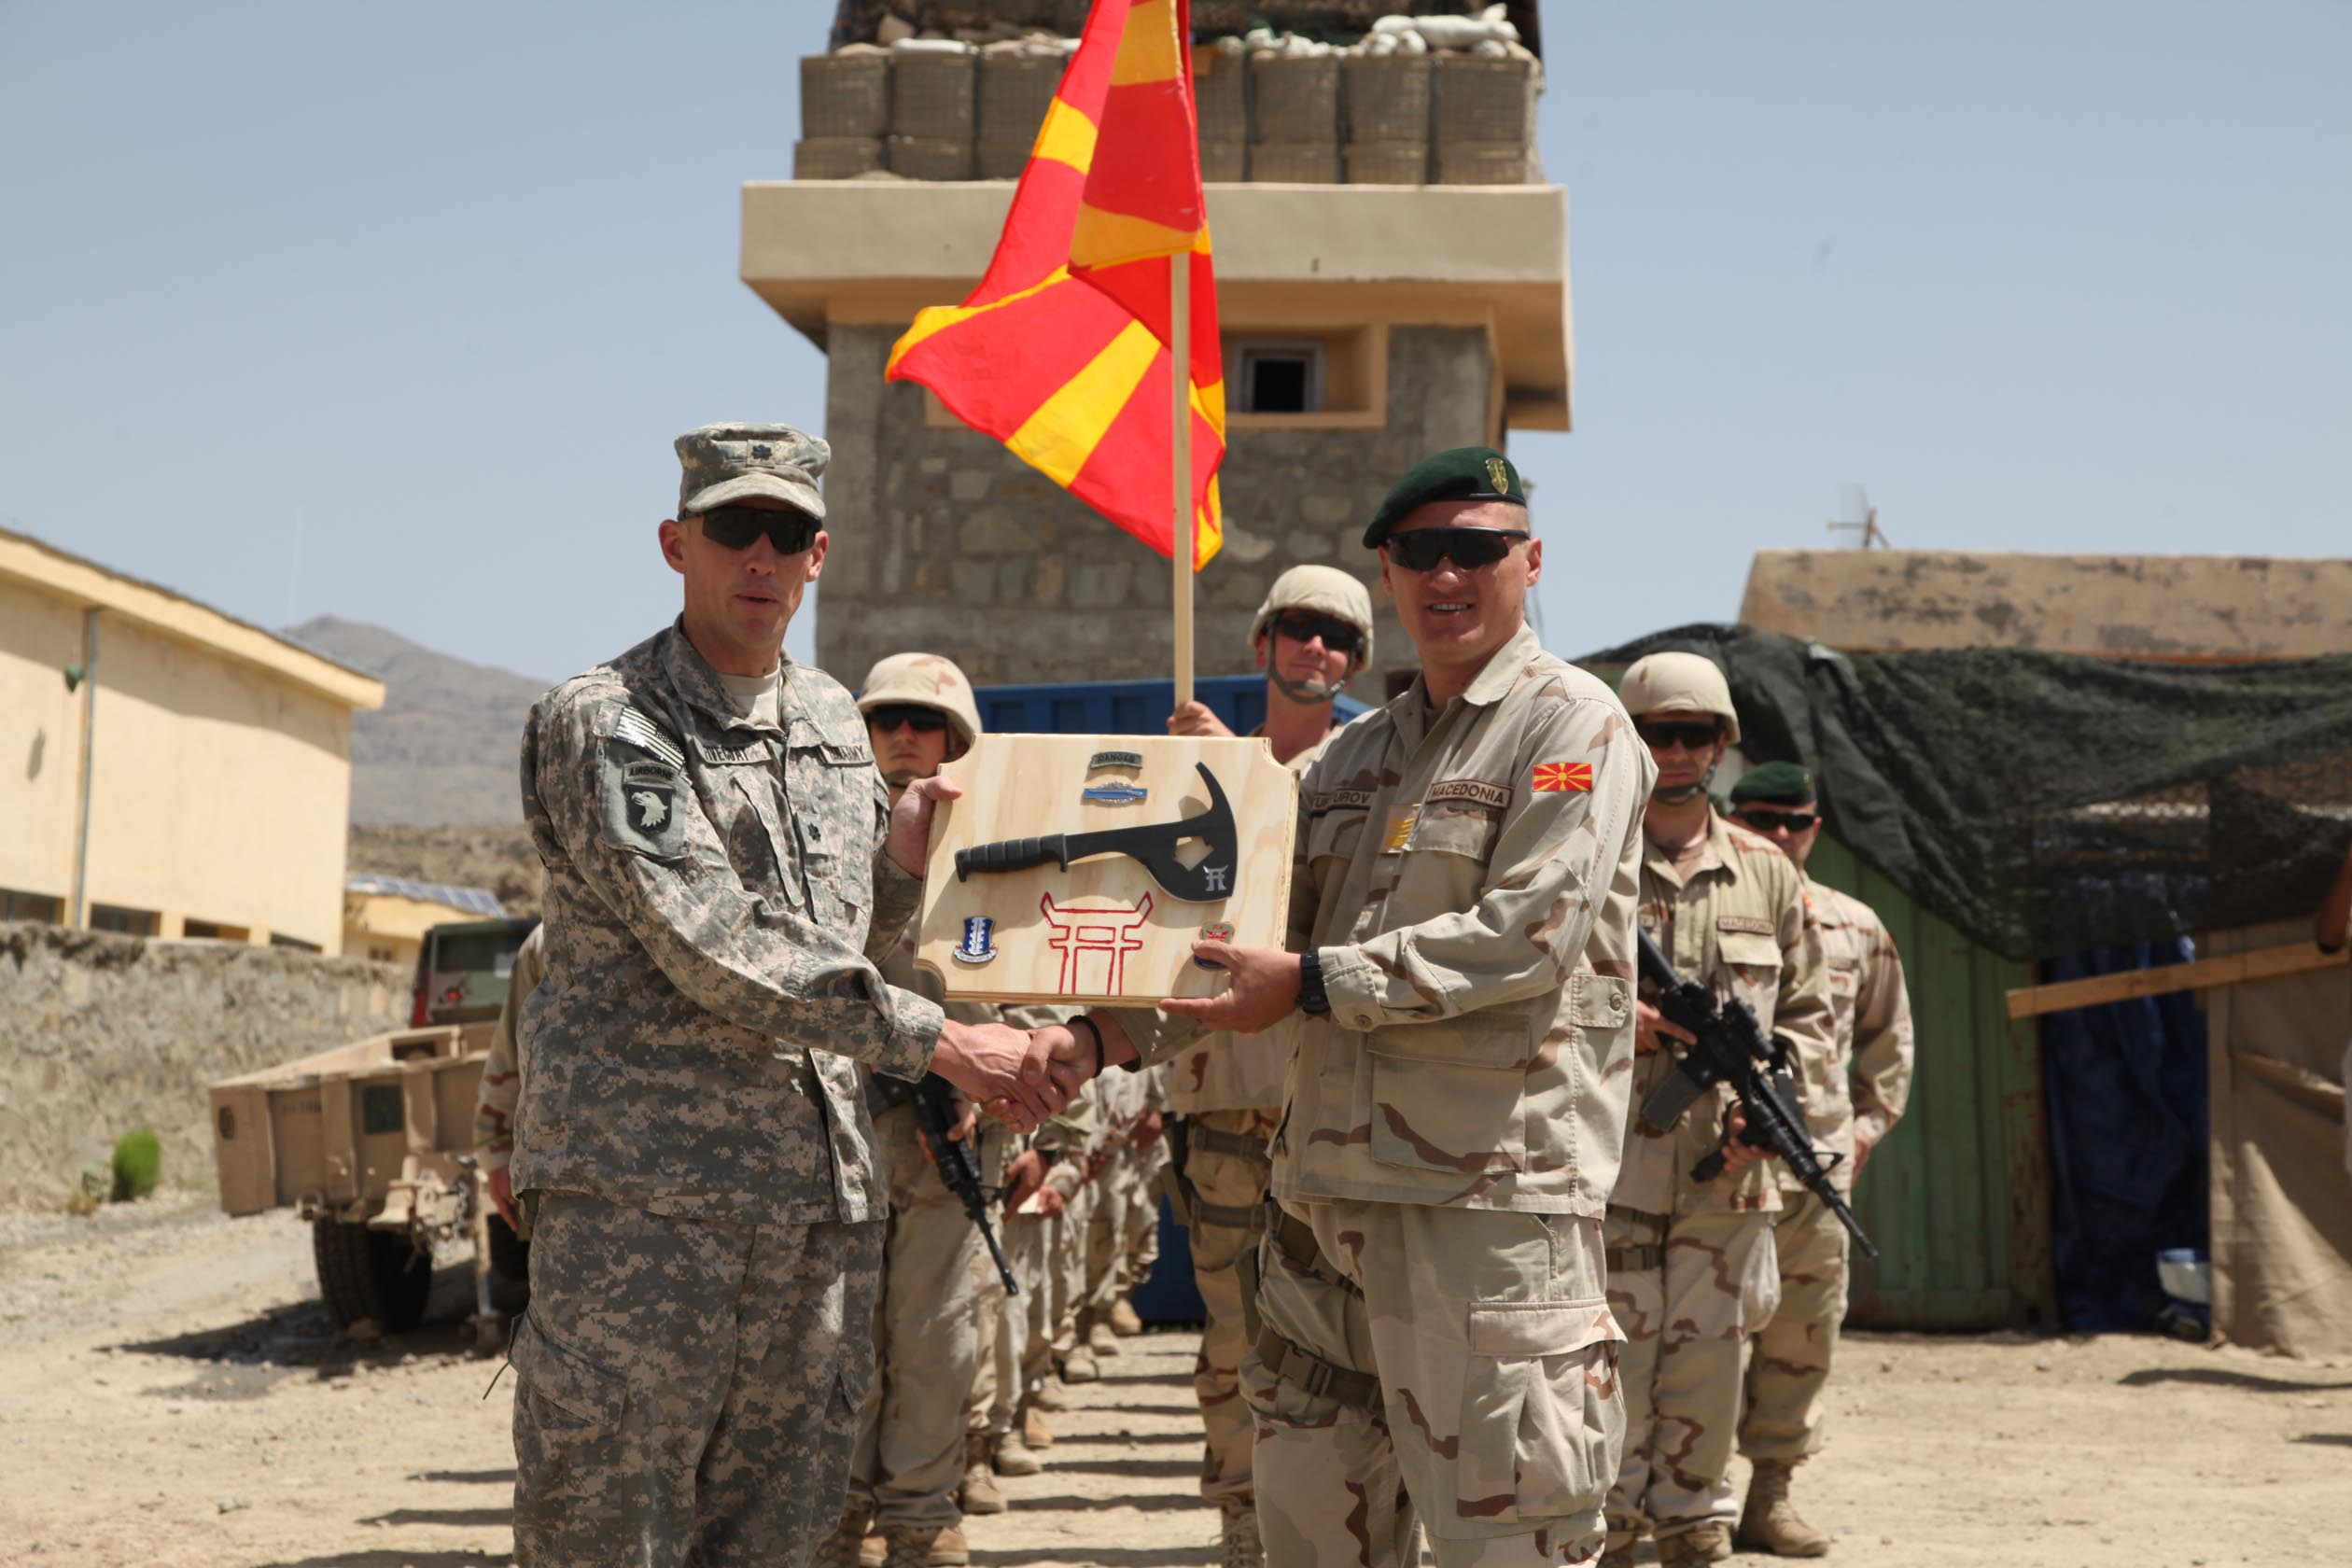 Afghanistan - U.S. Army Lt. Col. David Fivecoat, 3rd Battalion, 187th Infantry Regiment Commander, from Delaware, Ohio, presents Macedonian Capt. Borche Turturov